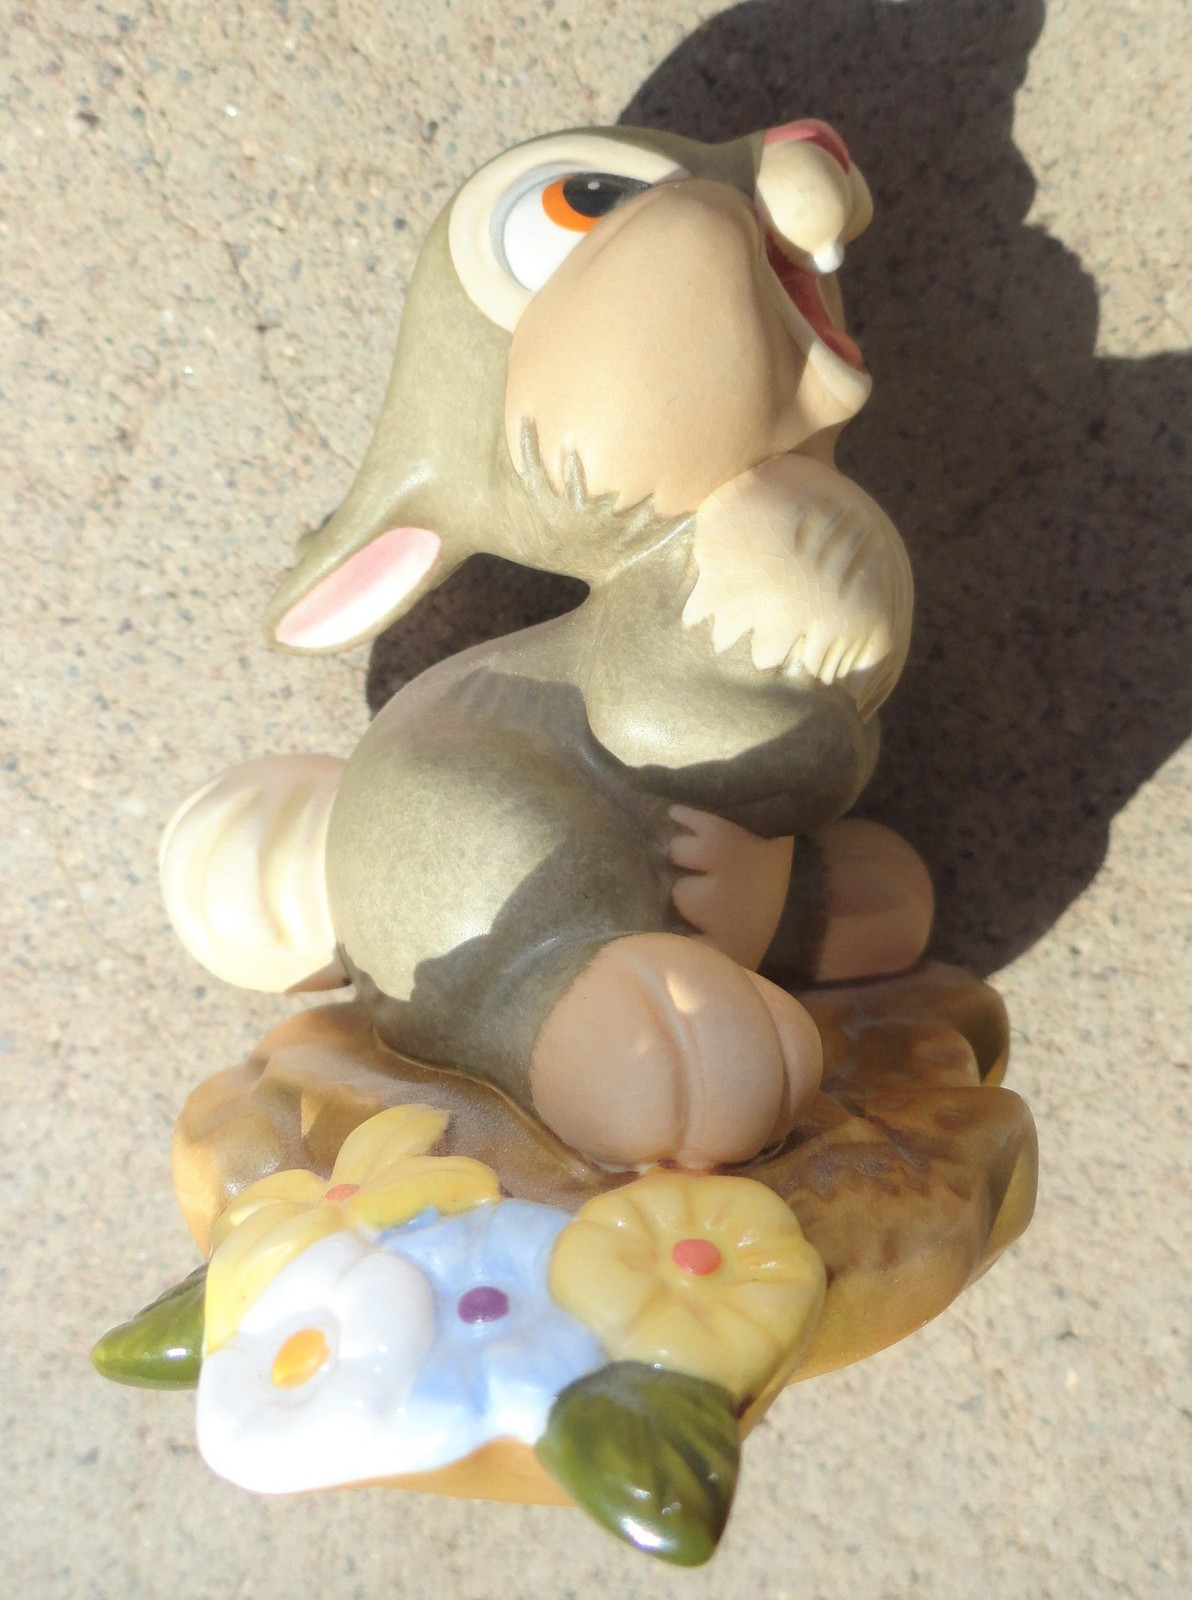 Disney Classic Collection Thumper Hee Hee Porcelain Figure